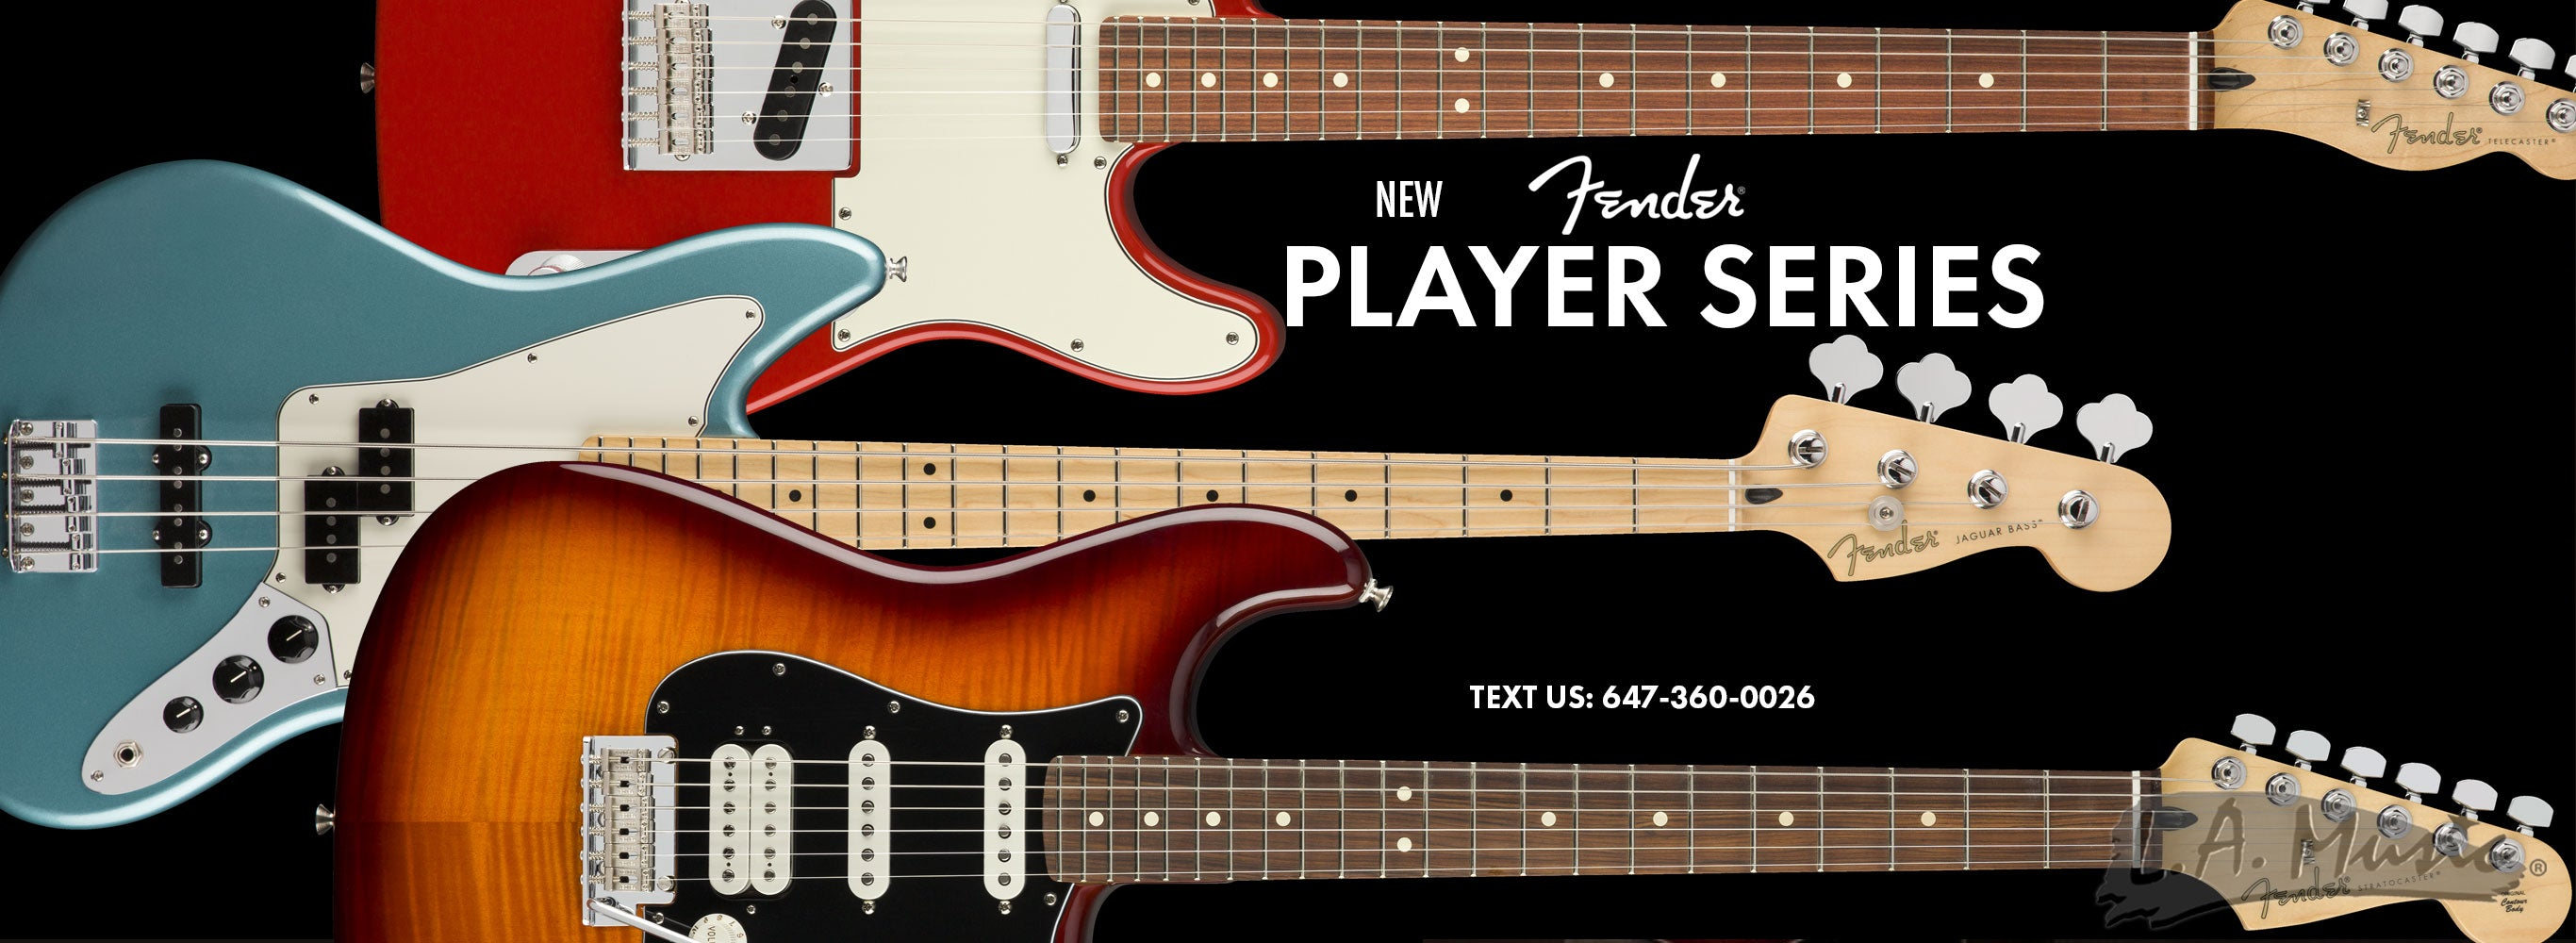 New Fender Player Series